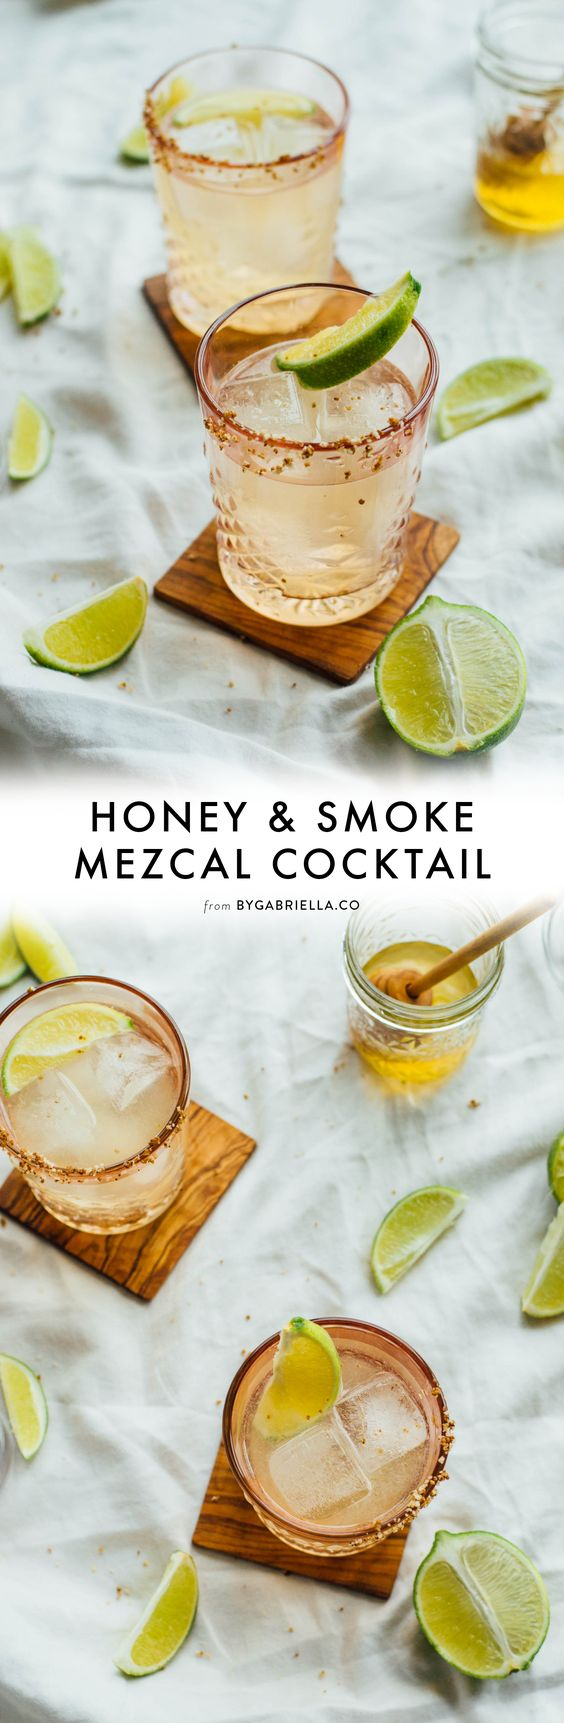 Mezcal Madness - We found with wild and exciting mix using one of our favorite spirits. MEZCAL! This Agave based drink is sure to bring life to any party! So next time you are hosting your own fiesta, make sure to use this delicious drink to wow your guests!